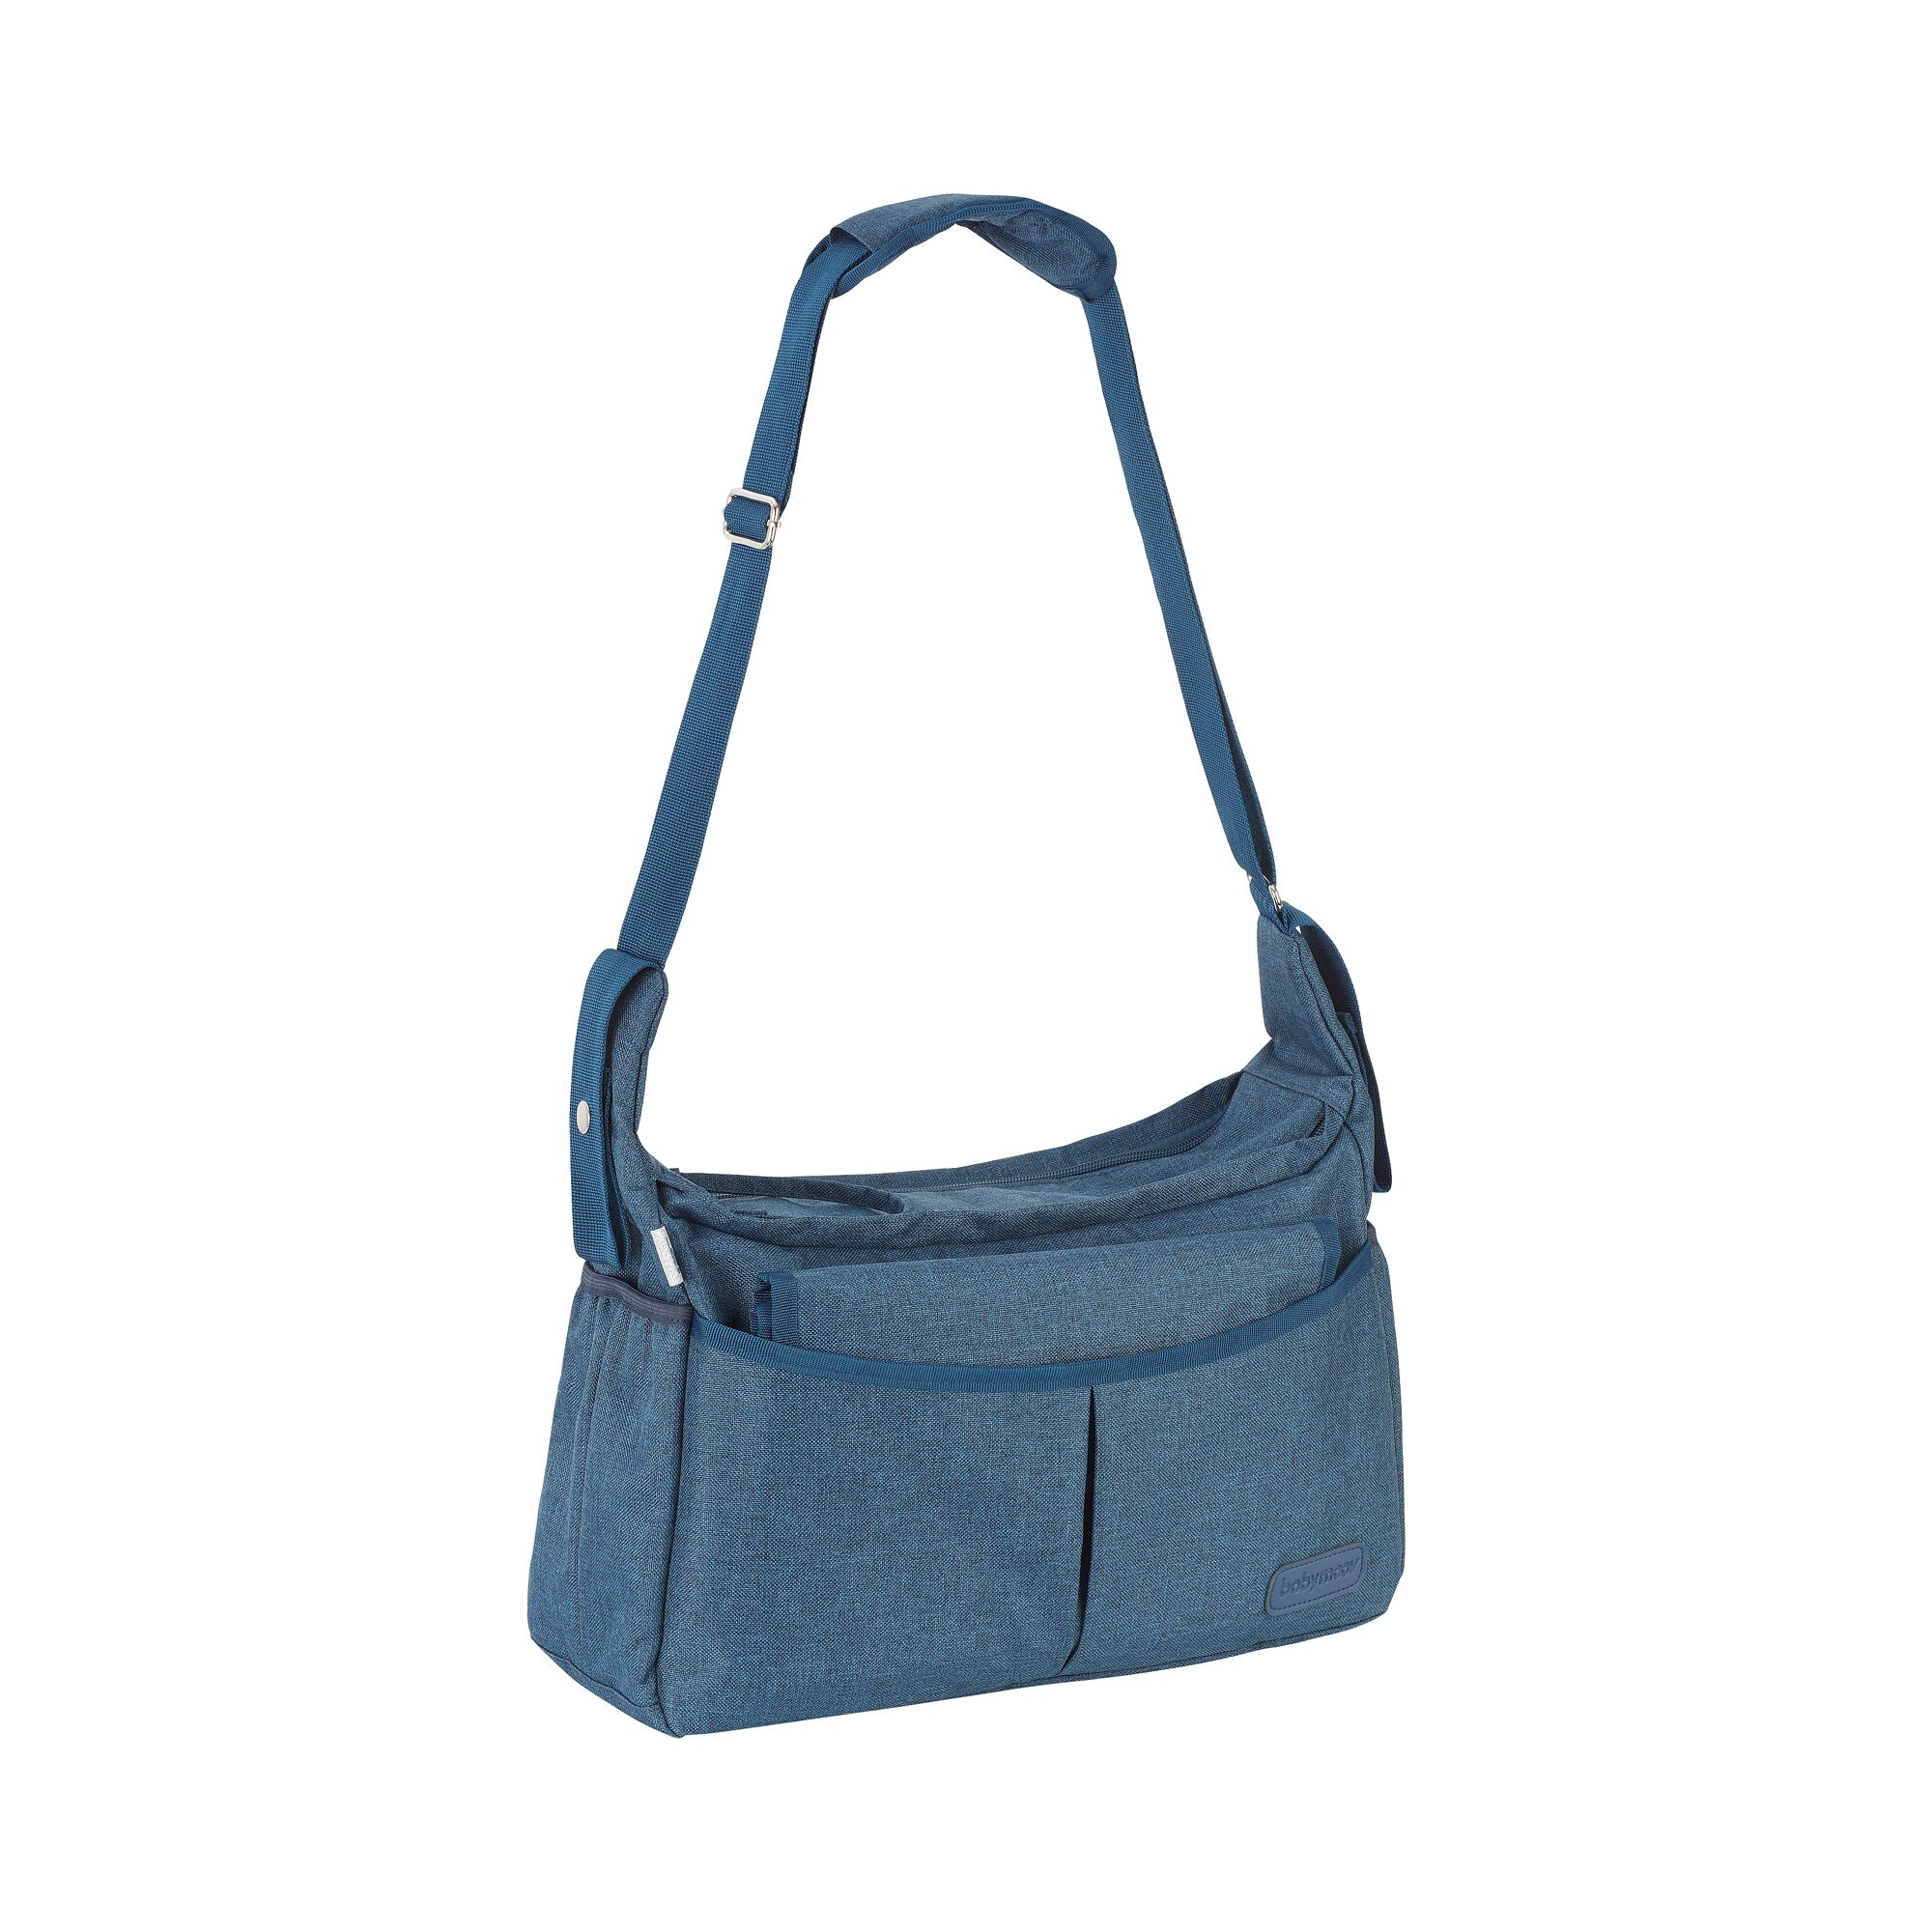 Babymoov Wickeltasche Urban Bag Smokey blau